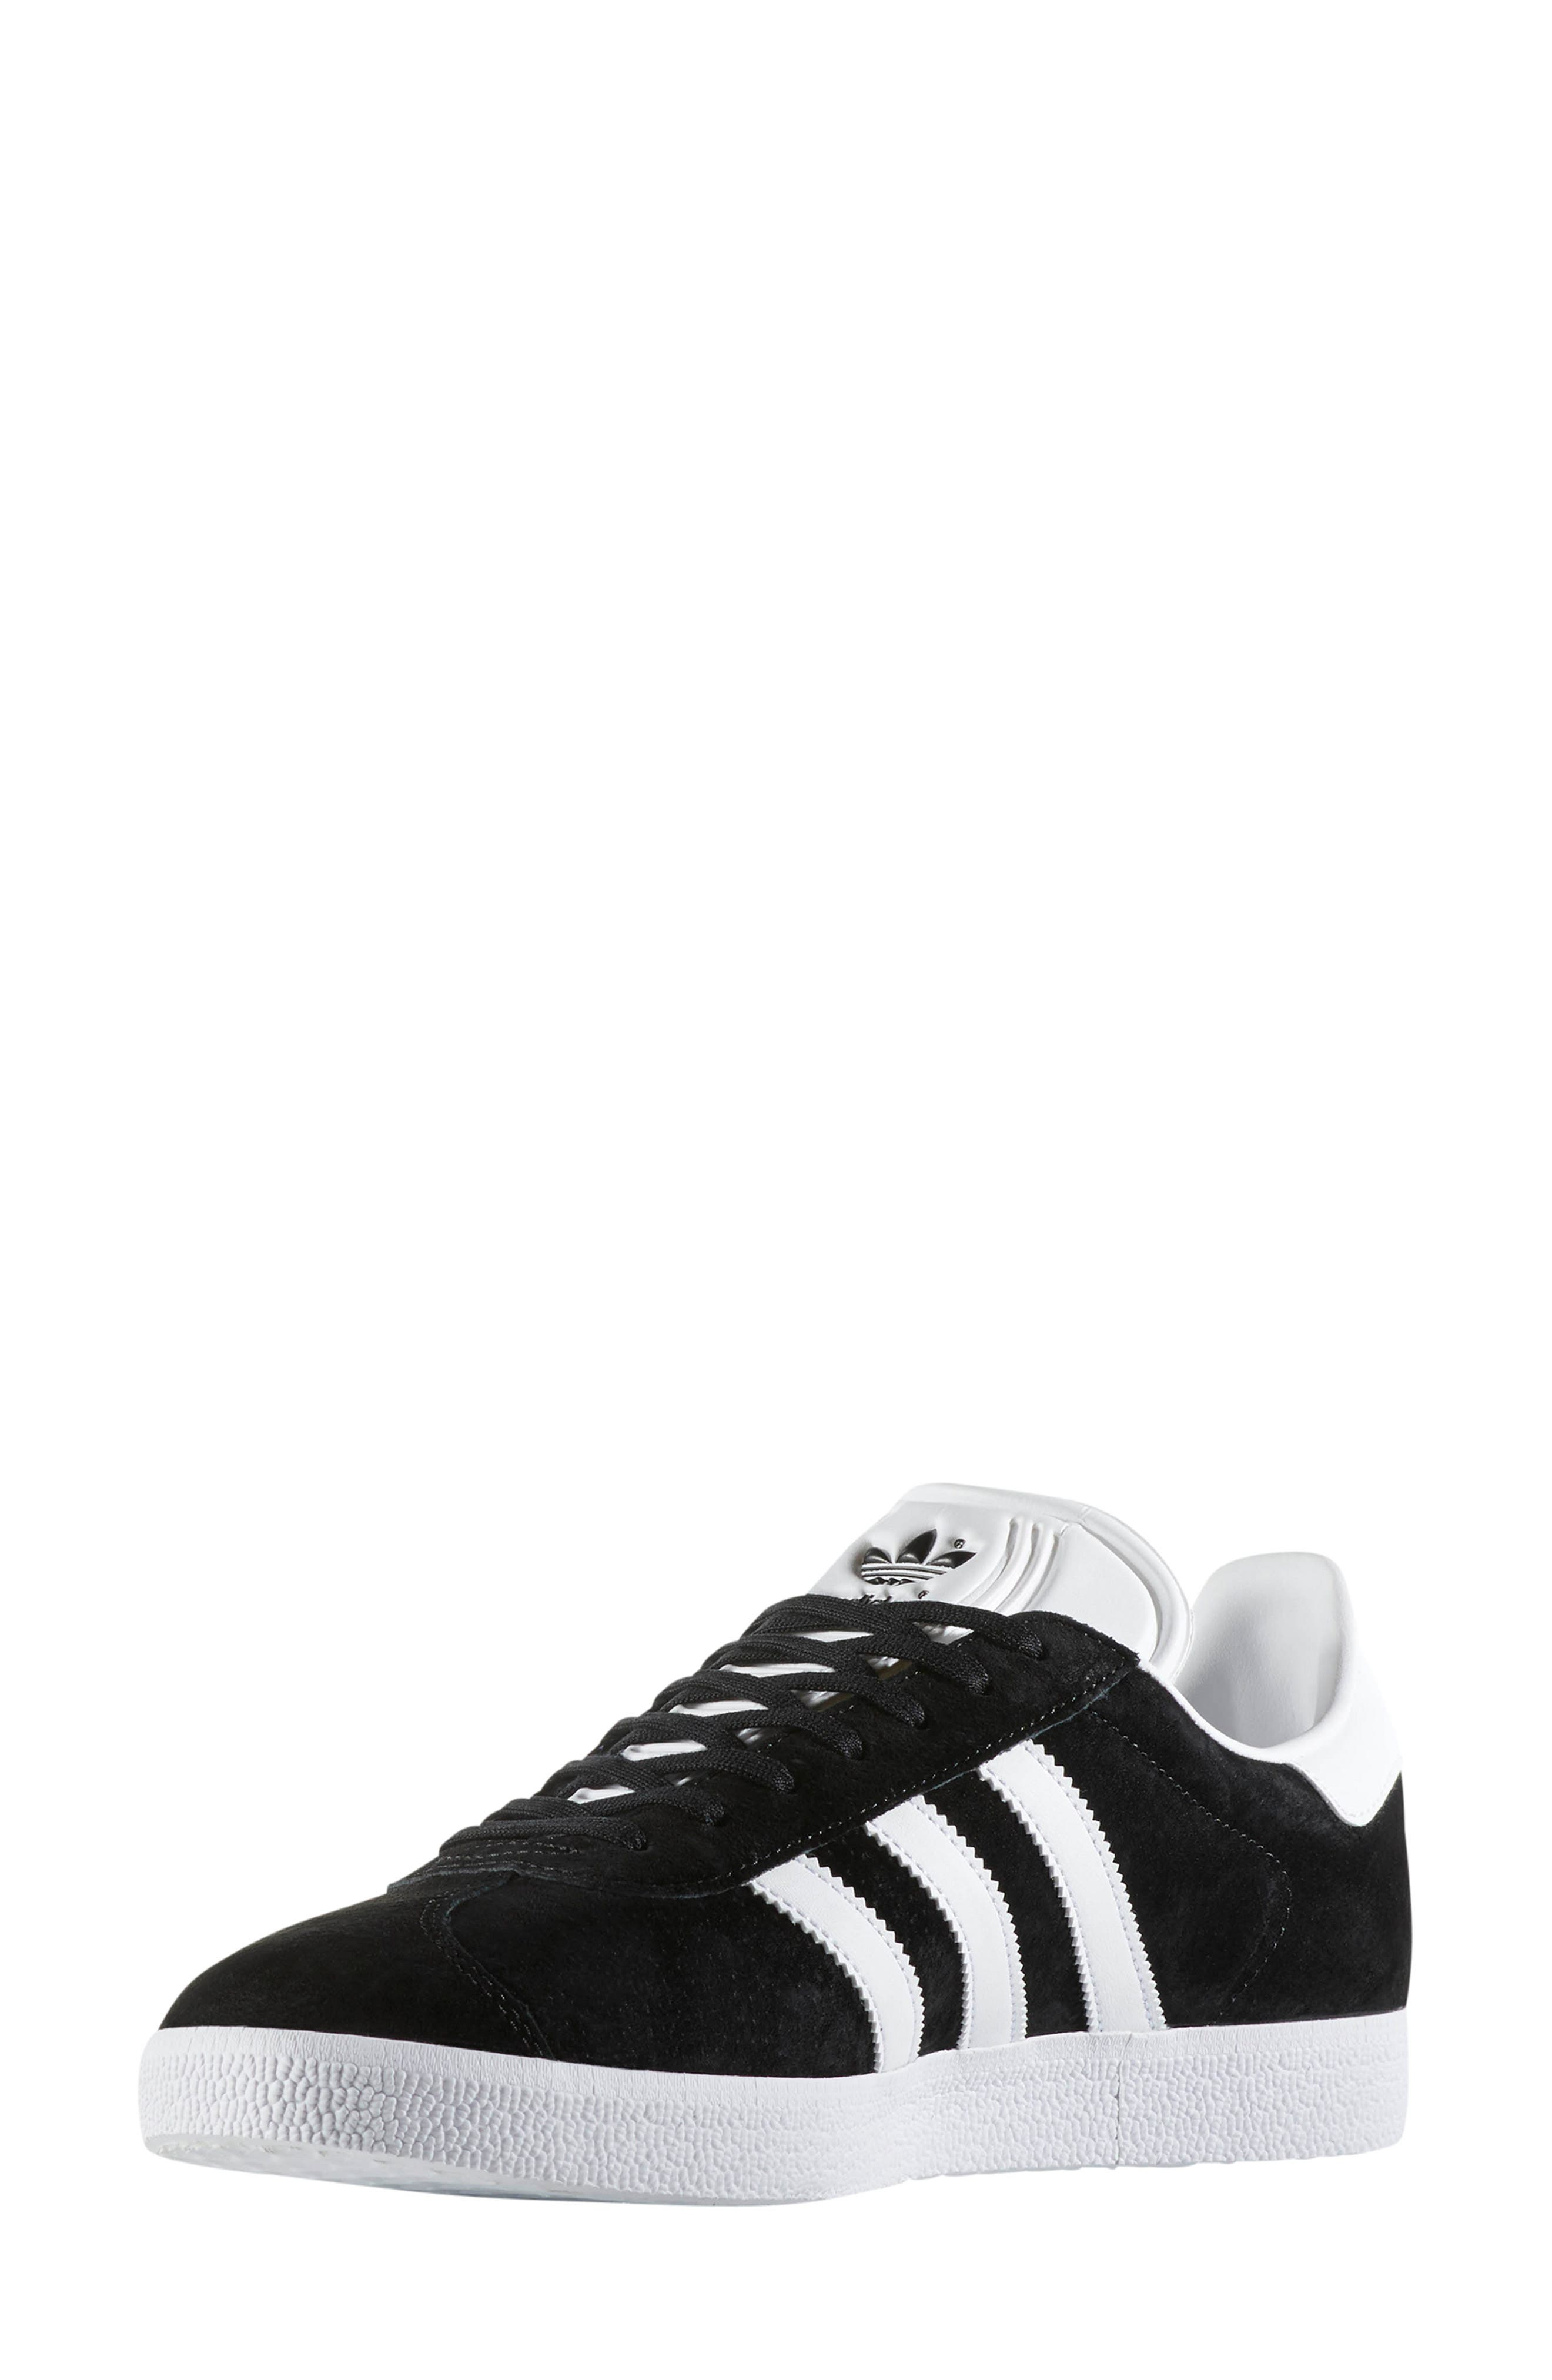 ADIDAS, Gazelle Sneaker, Alternate thumbnail 8, color, 003